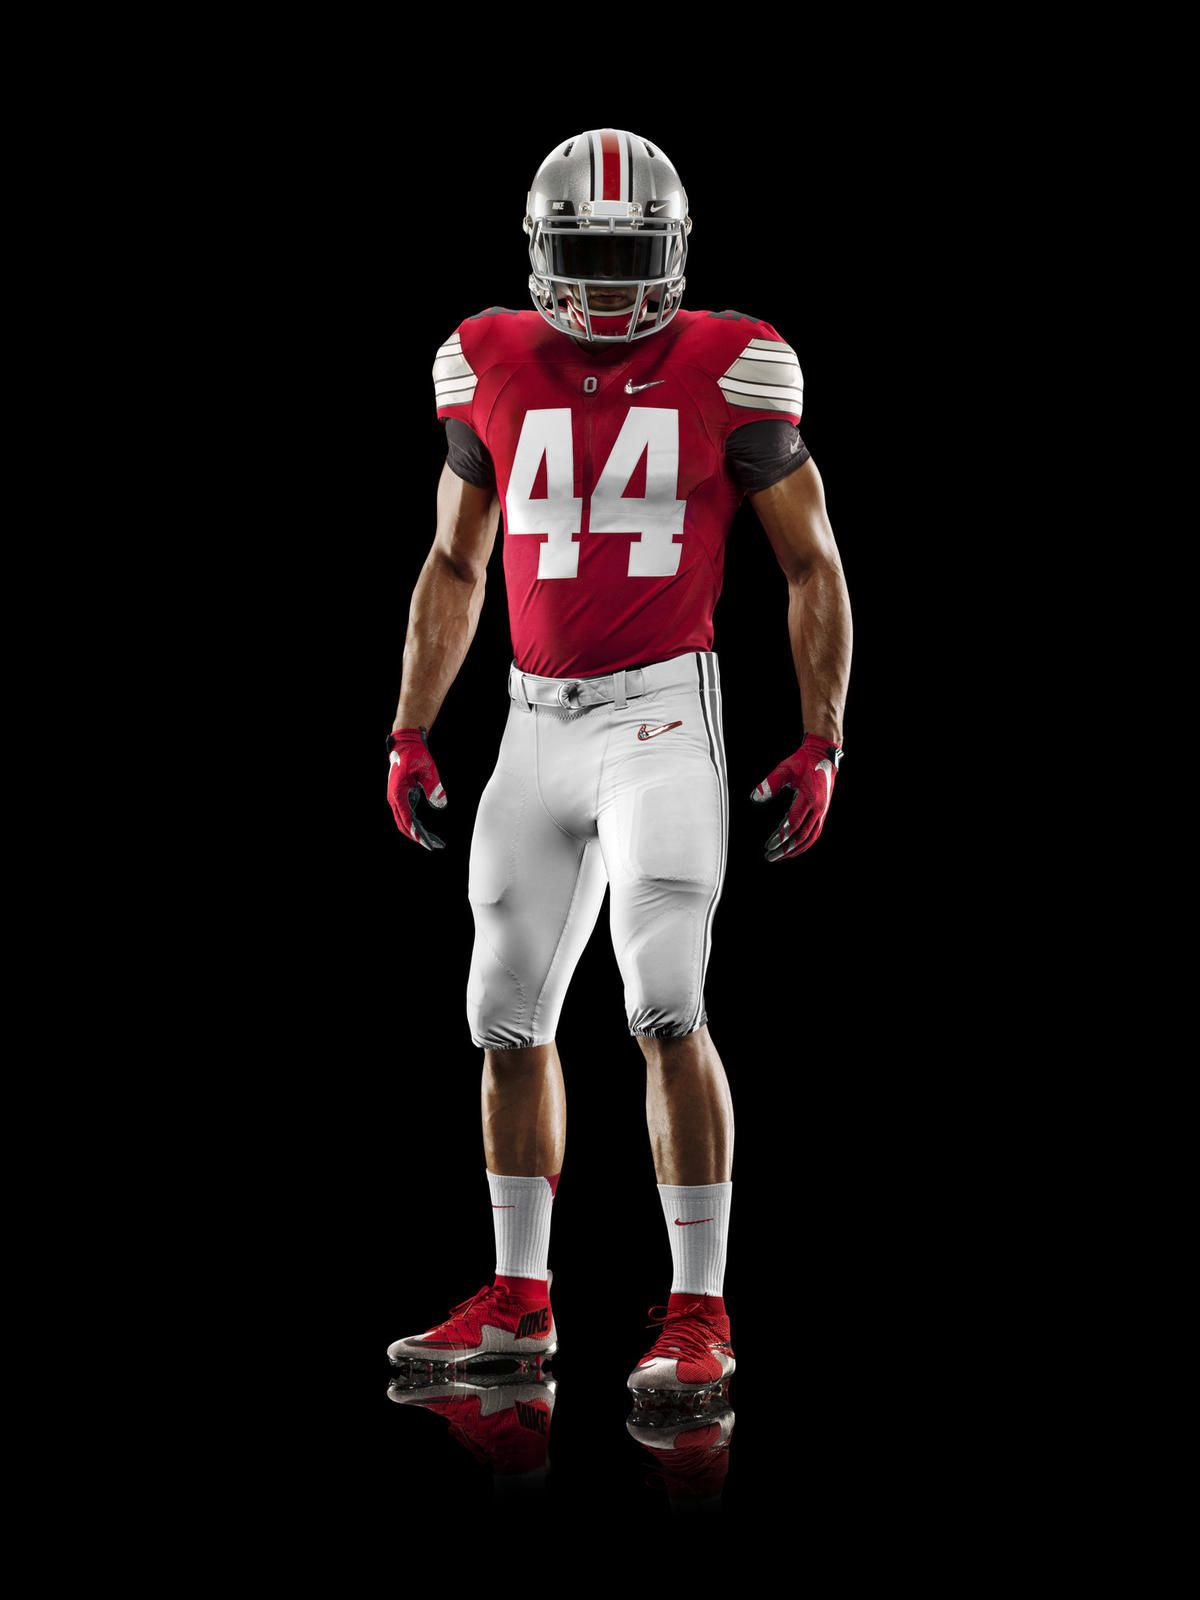 Nike Playoff Uni s GO BUCKS! Nike Playoff Uni s GO BUCKS! College Football  Uniforms ... 100a867d9